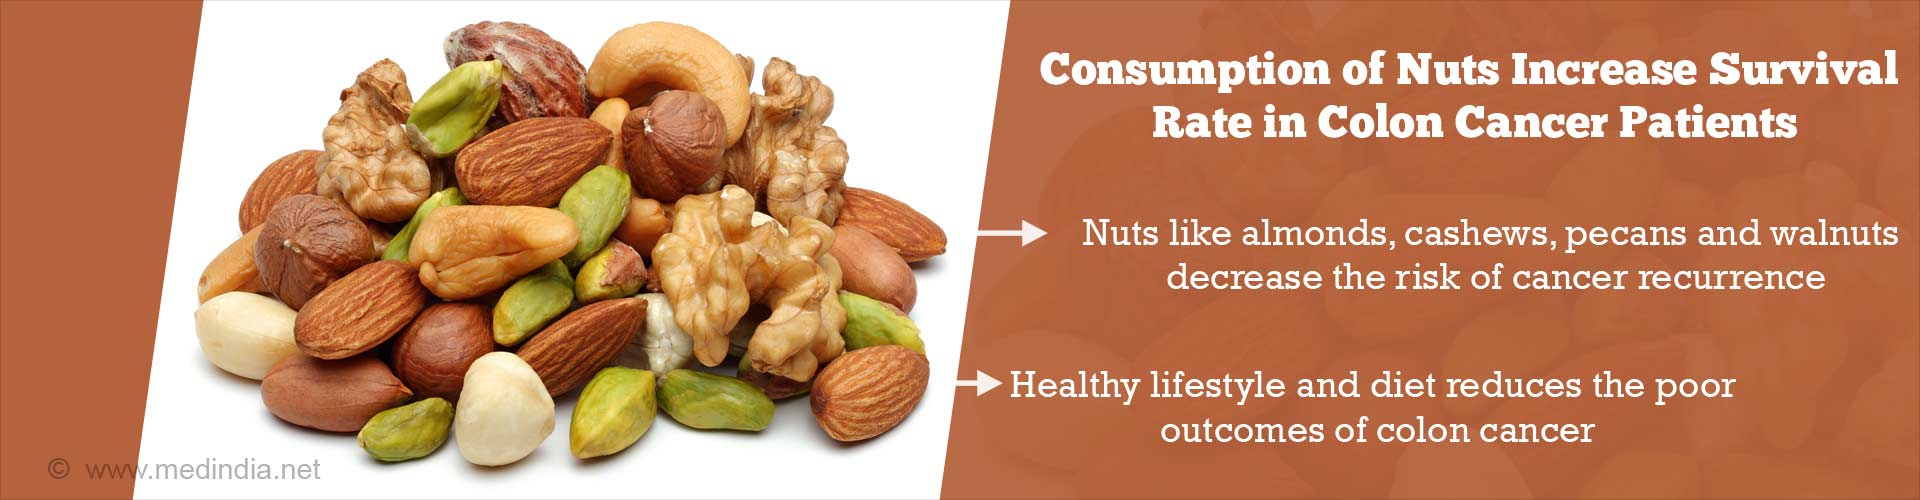 Eating Nuts Increases Survival Rate of Colon Cancer Patients